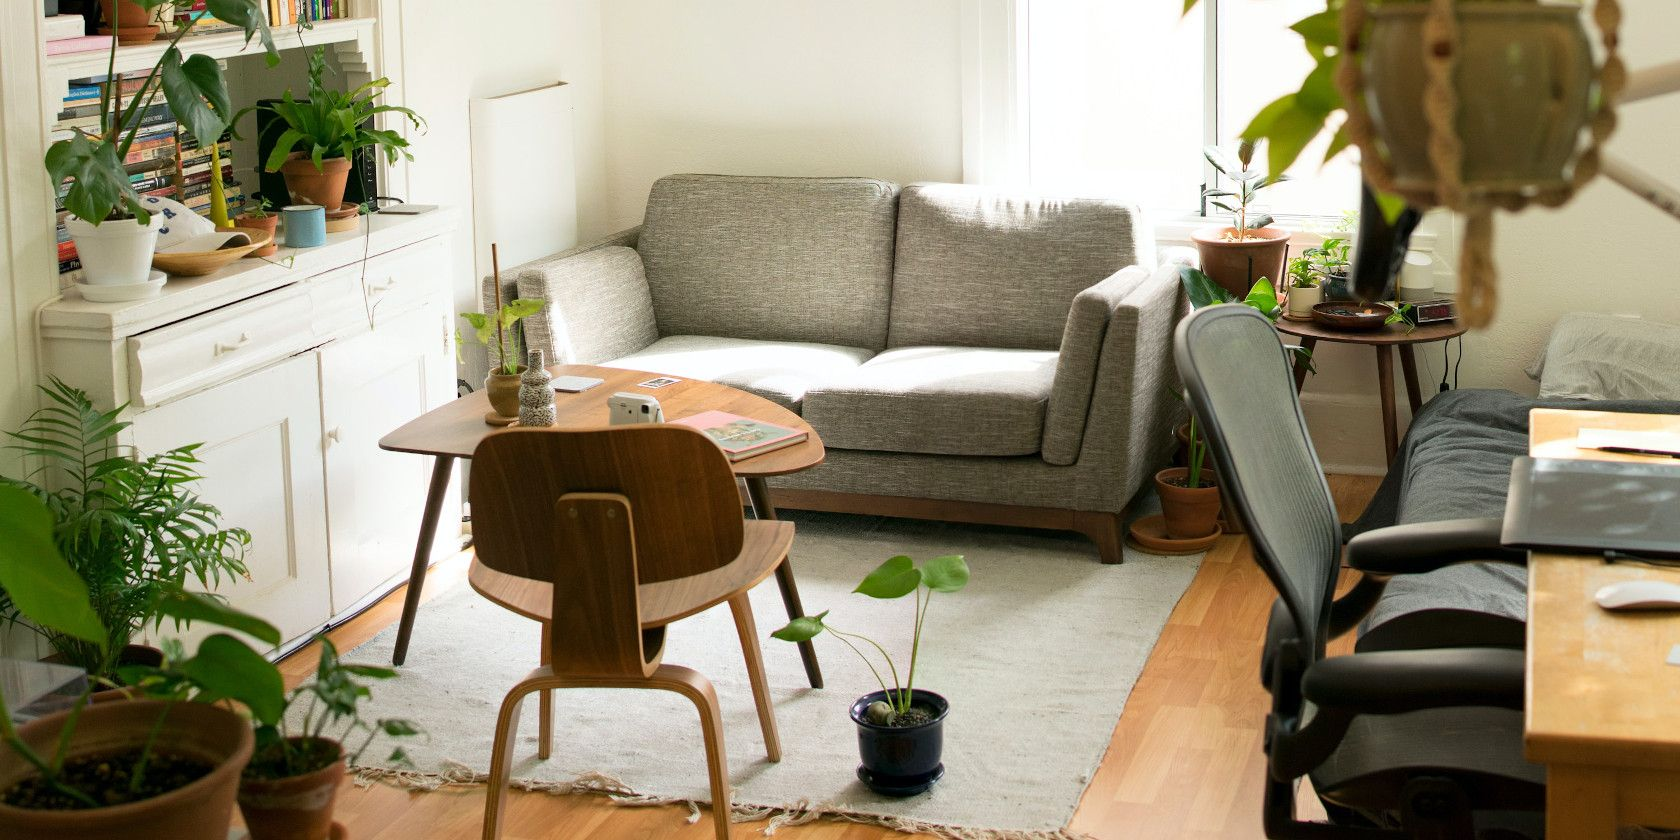 Where to Find Free Furniture Online: The 13 Best Sites  MakeUseOf